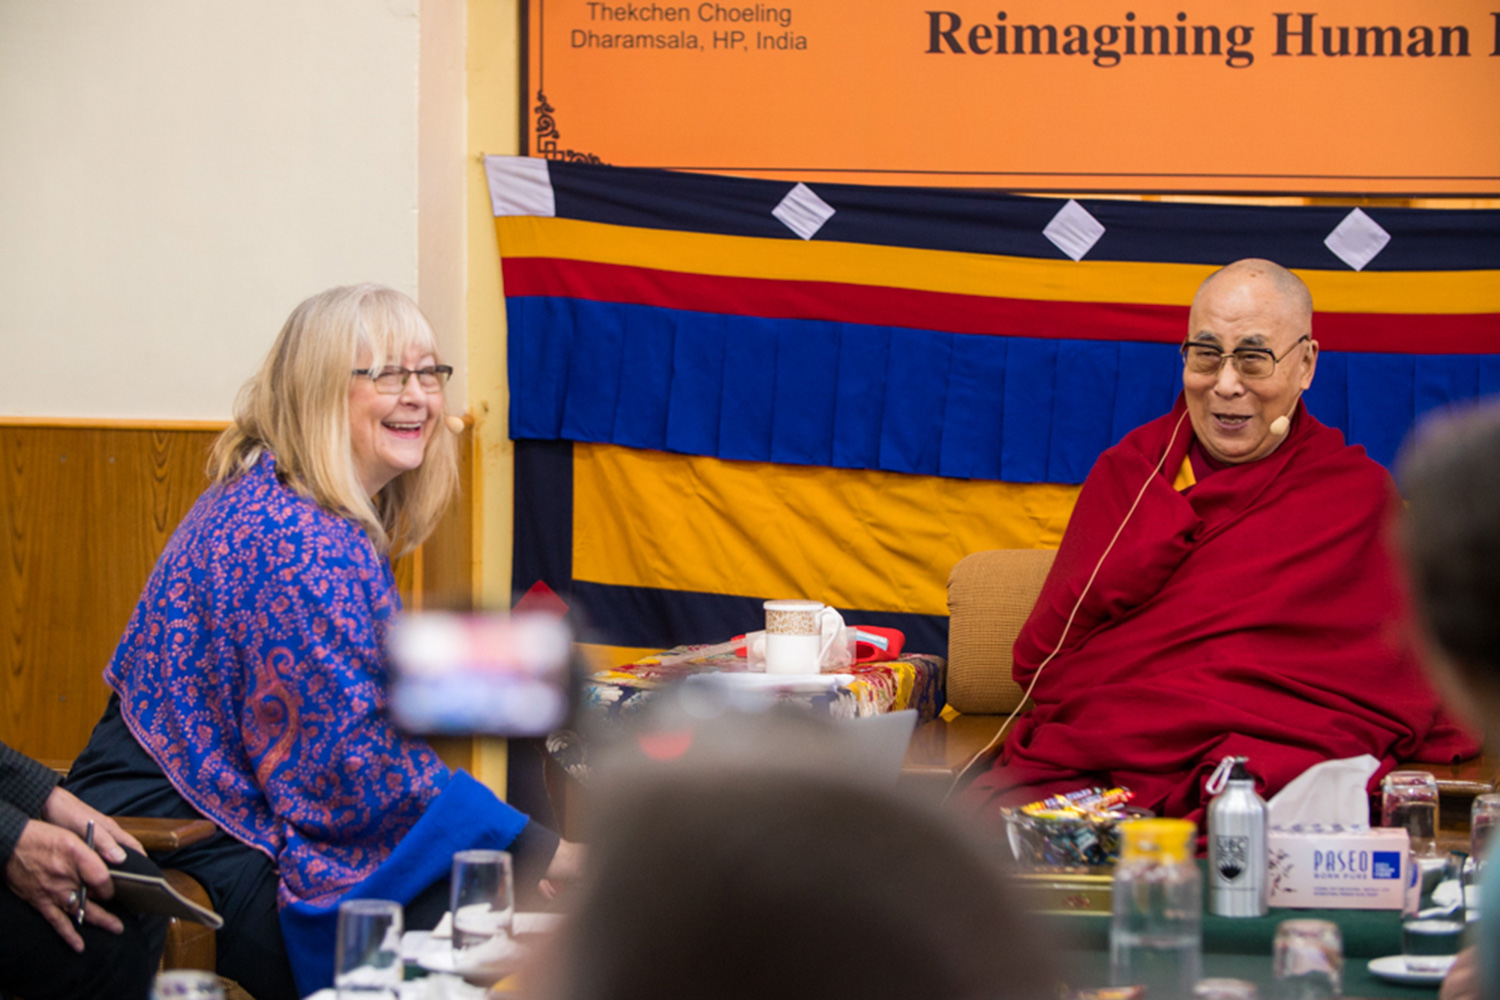 Tish Jennings presented her research to the Dalai Lama earlier this month in India. (Photo by Jonathan Joy-Gaba)